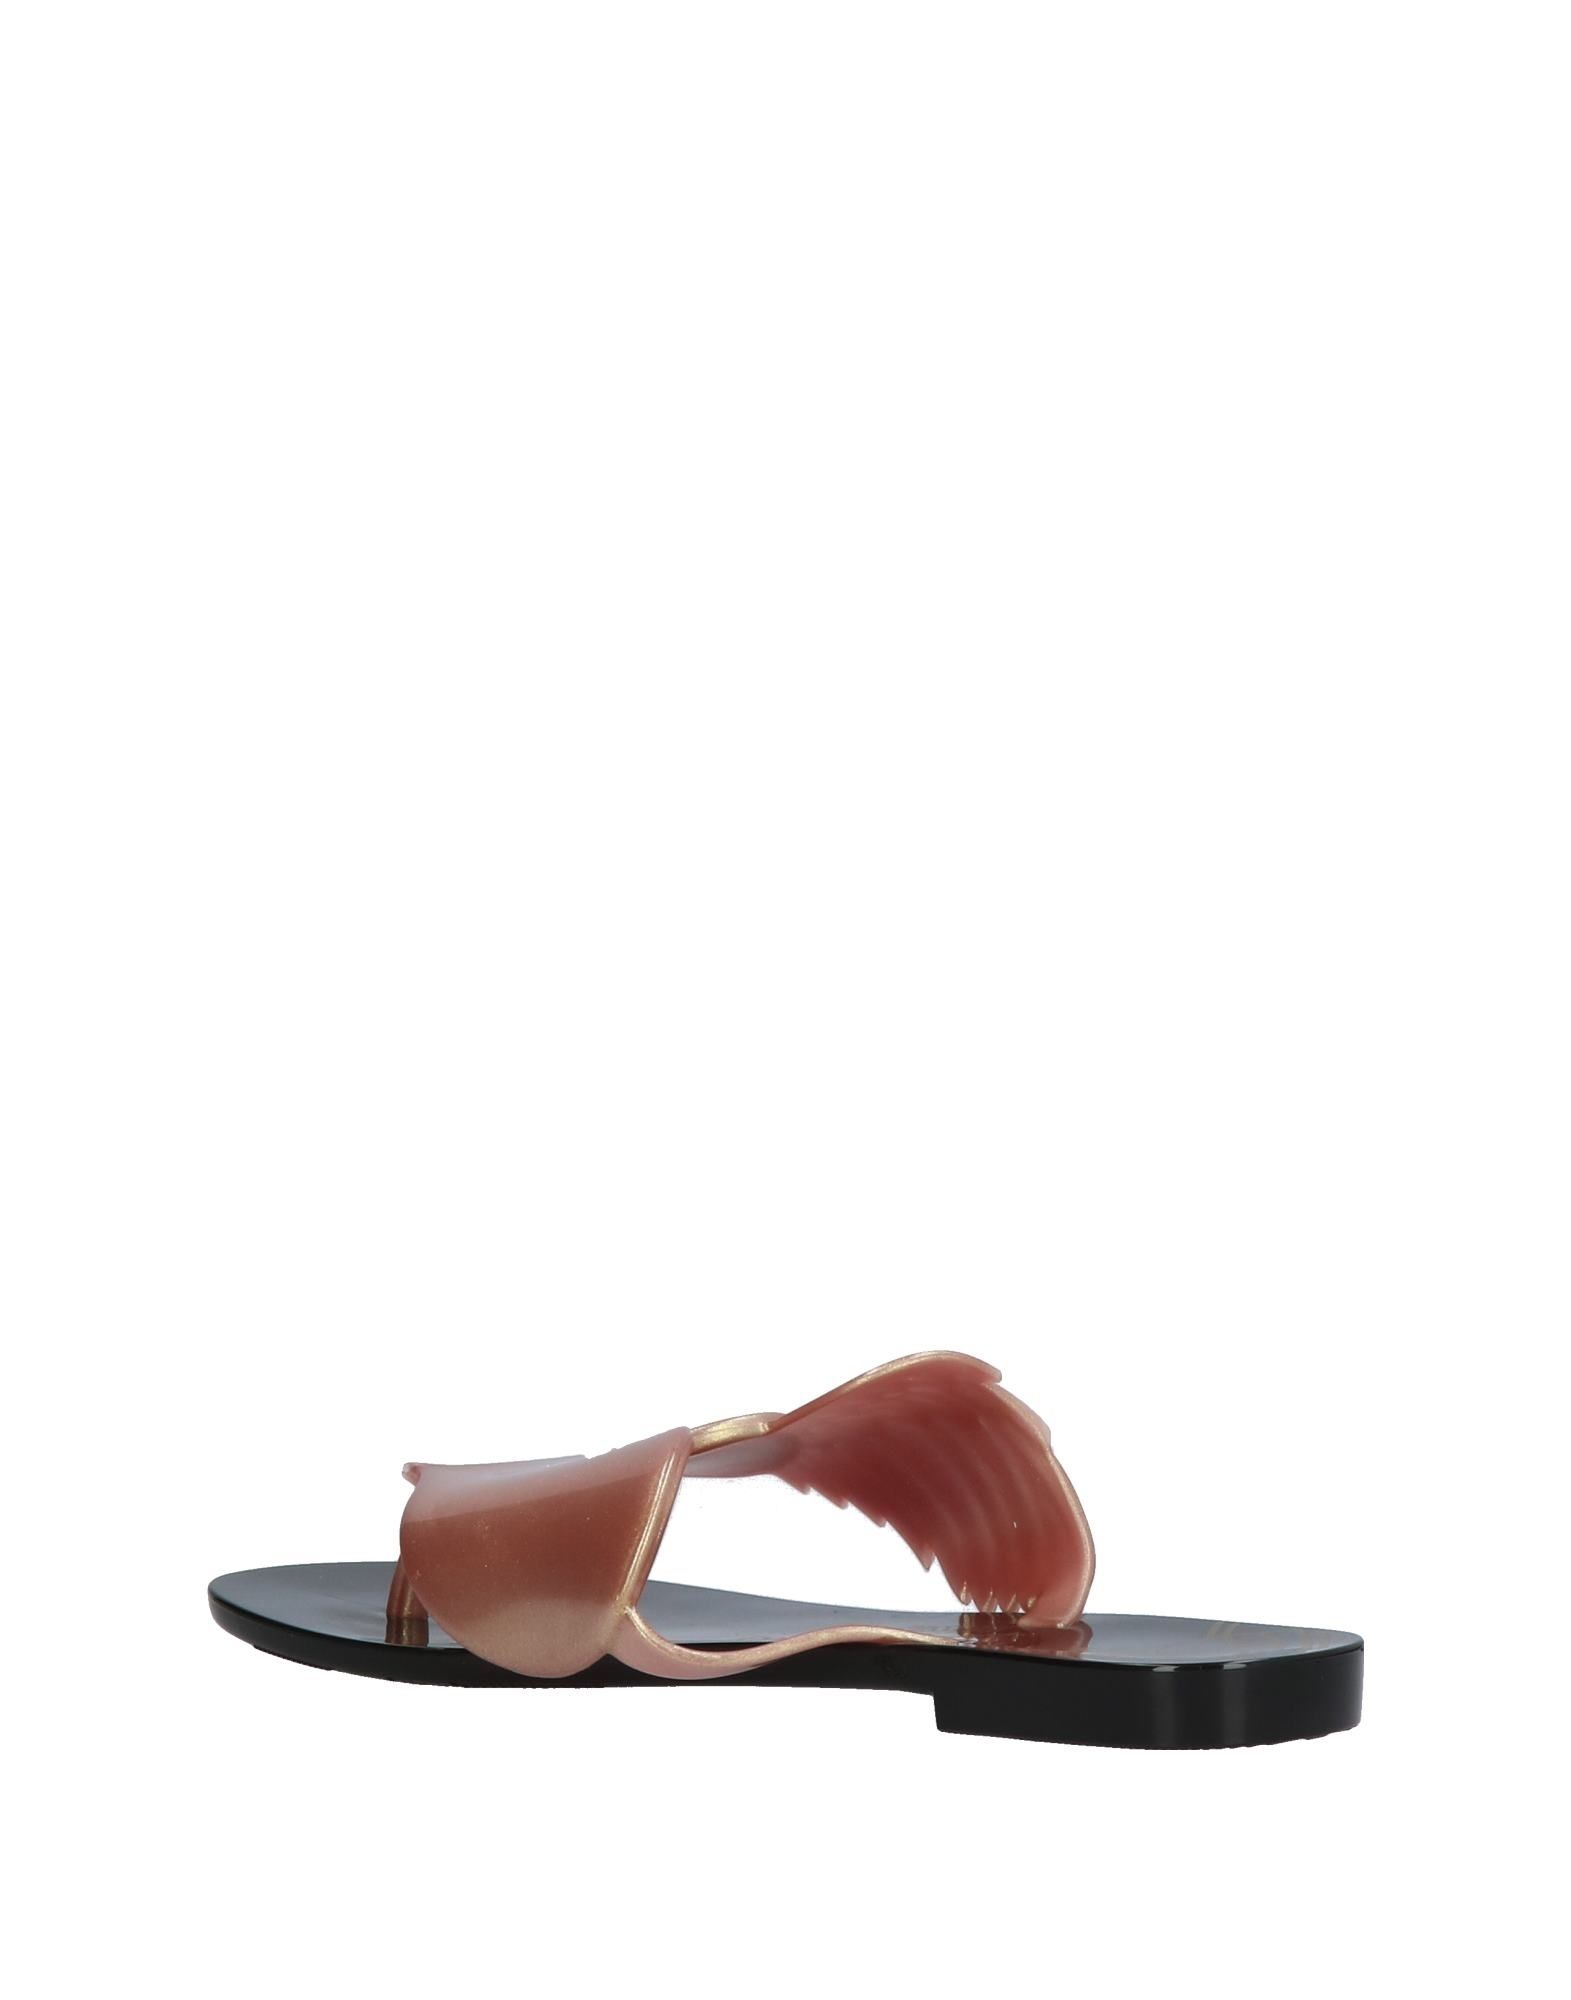 Tongs Vivienne Westwood Anglomania + Melissa Femme - Tongs Vivienne Westwood Anglomania + Melissa sur